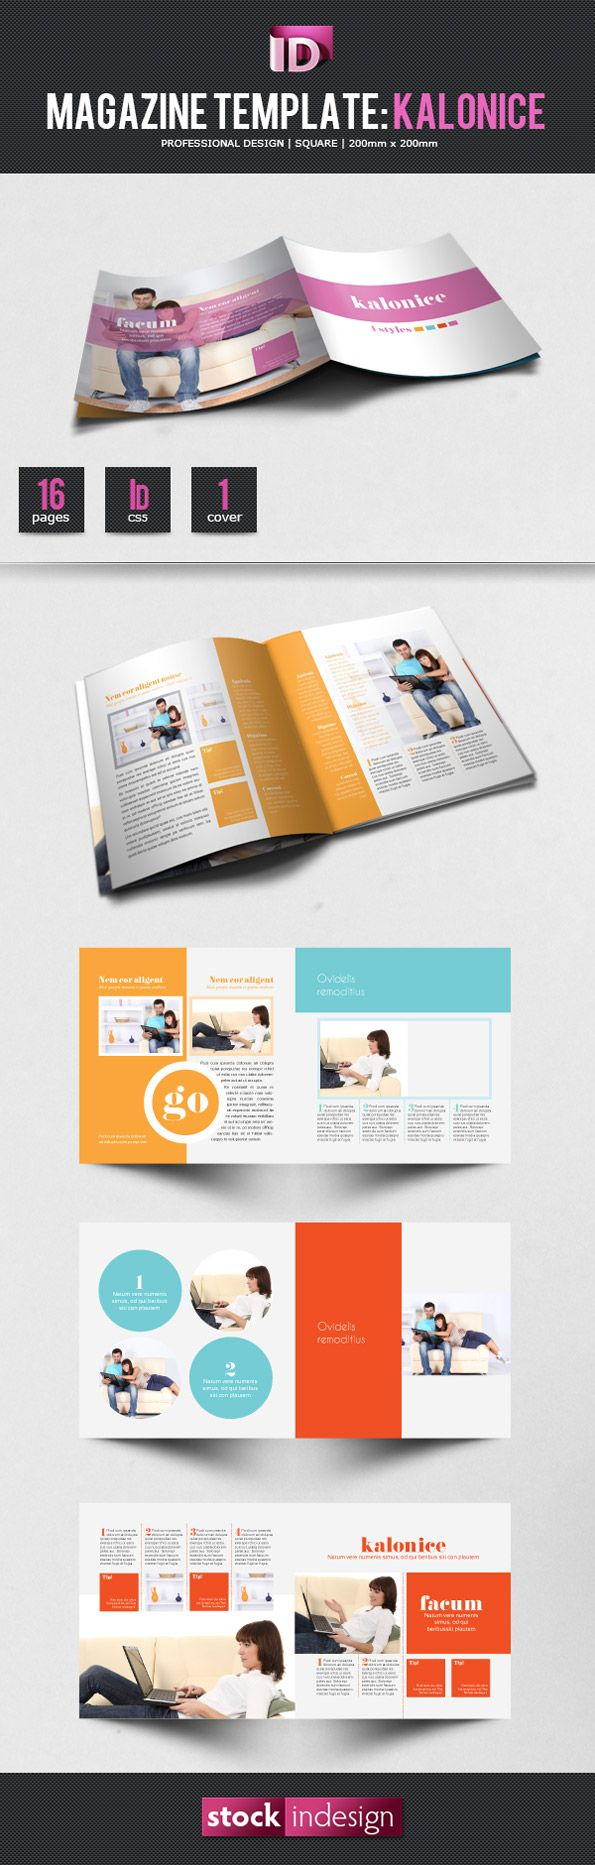 Free Indesign Magazine Template Kalonice Inspi Magazine